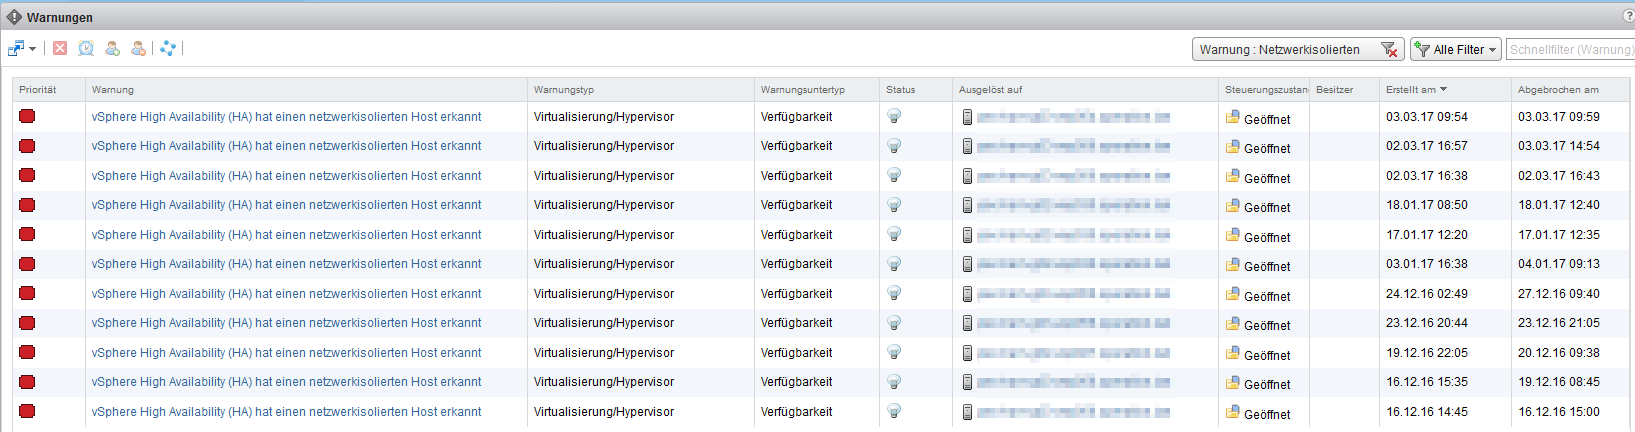 vRealize Operations Manager - Warnungen - vSphere HA isolation Events